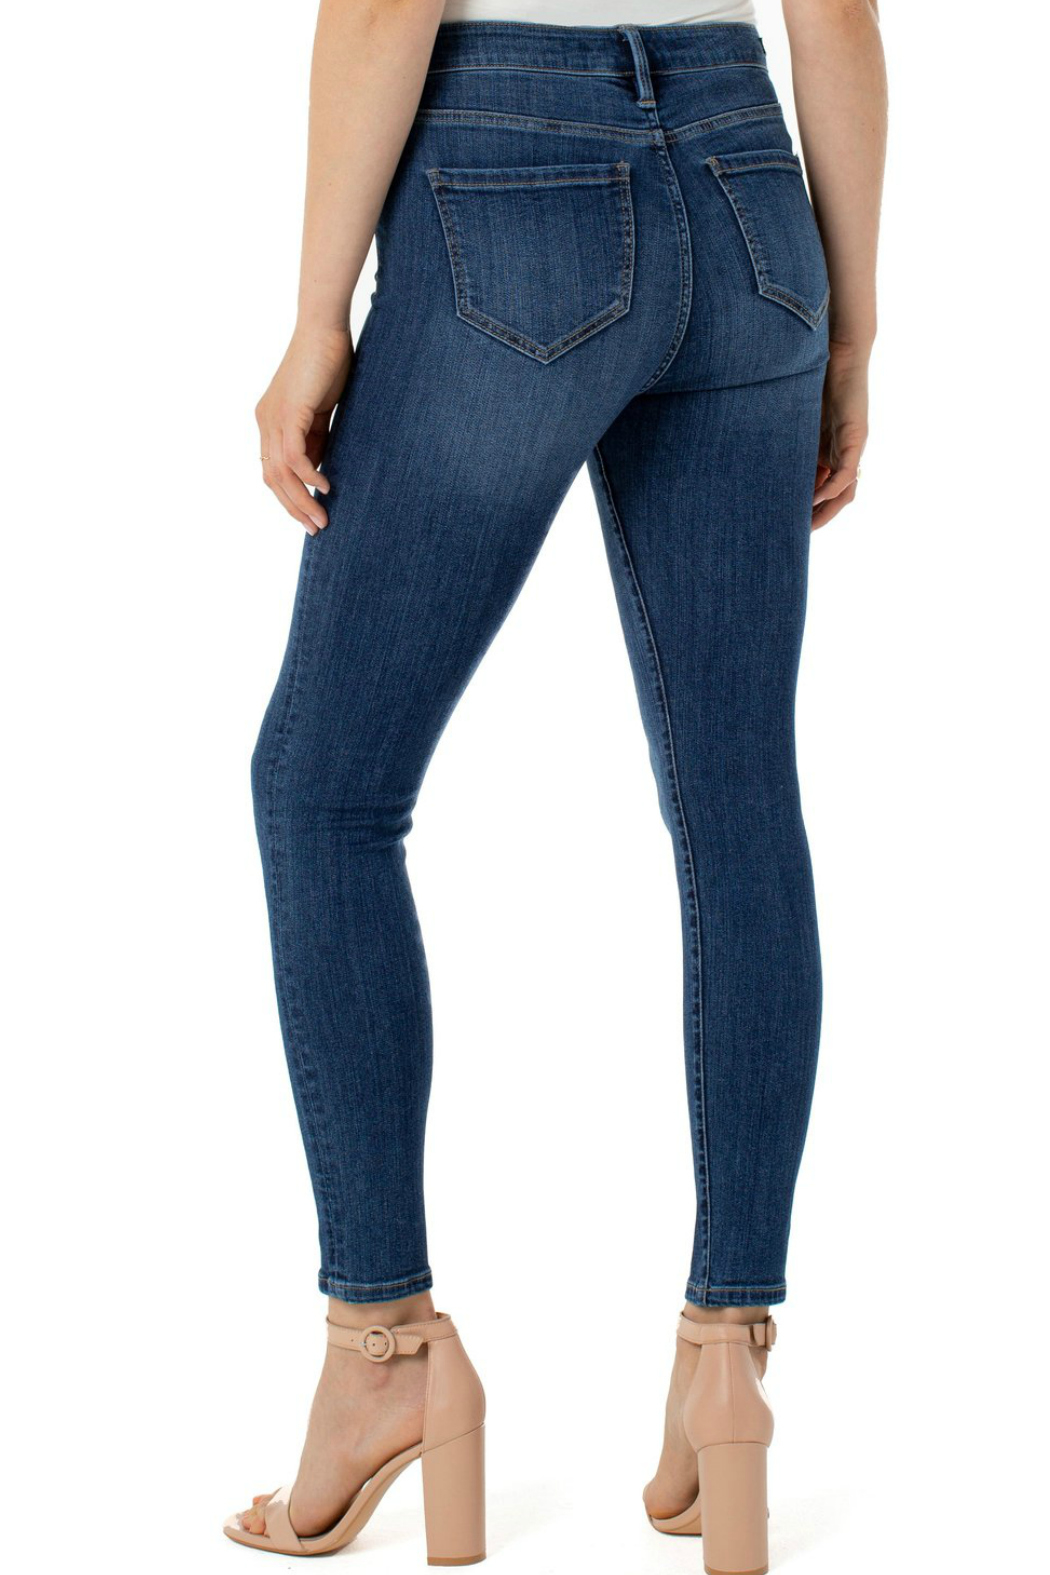 Liverpool  ABBY ANKLE SKINNY - Front Full Image